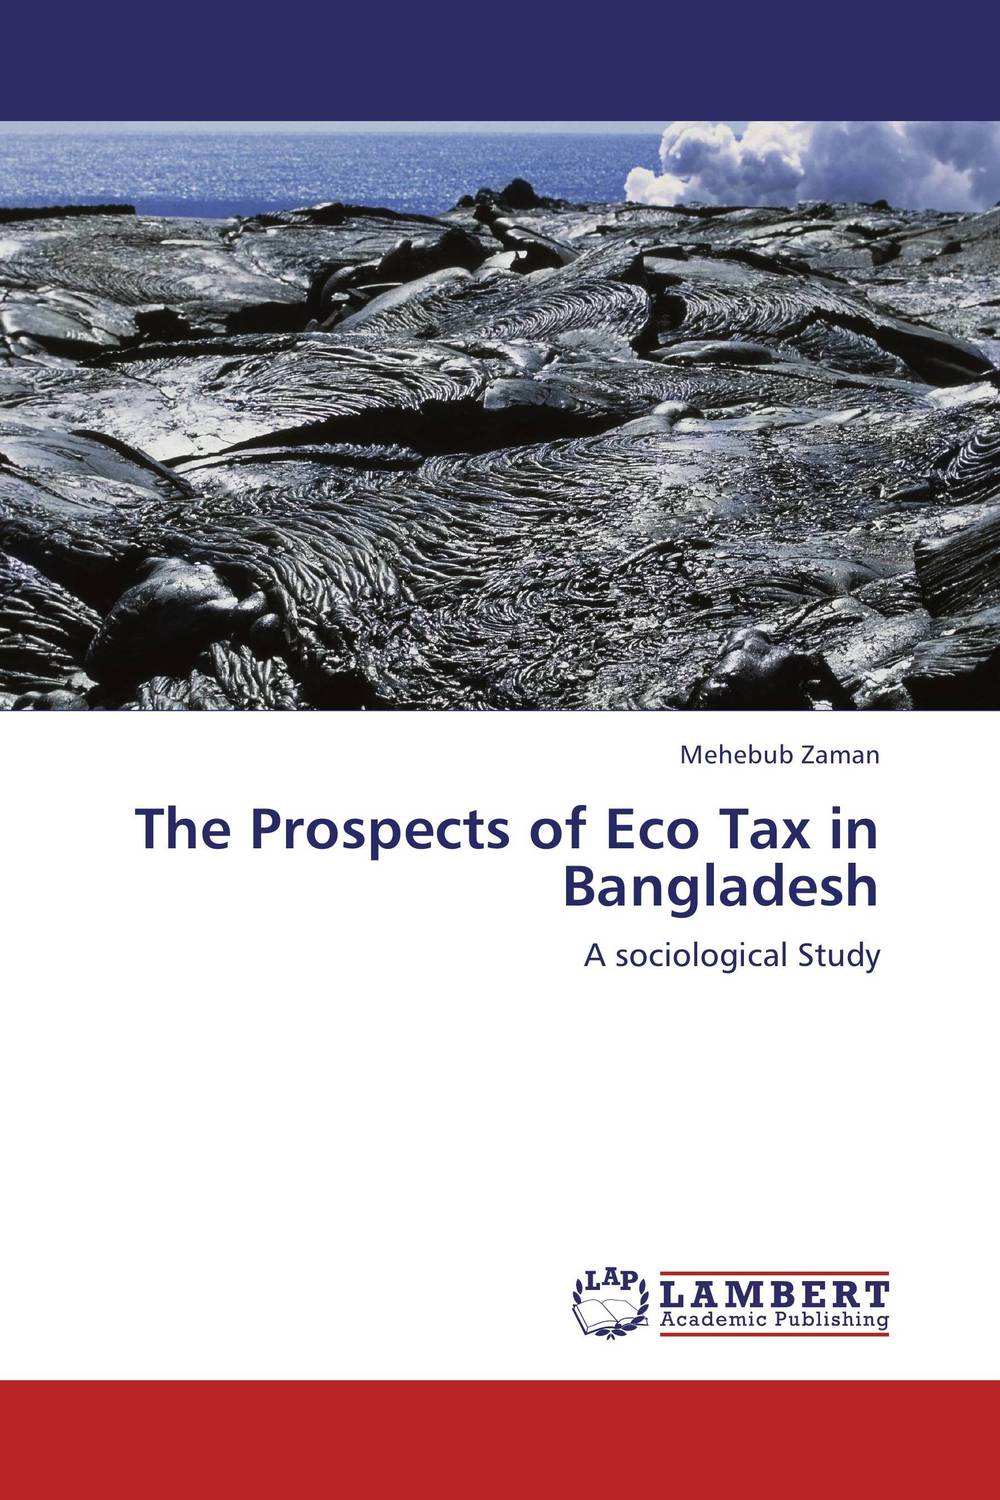 The Prospects of Eco Tax in Bangladesh